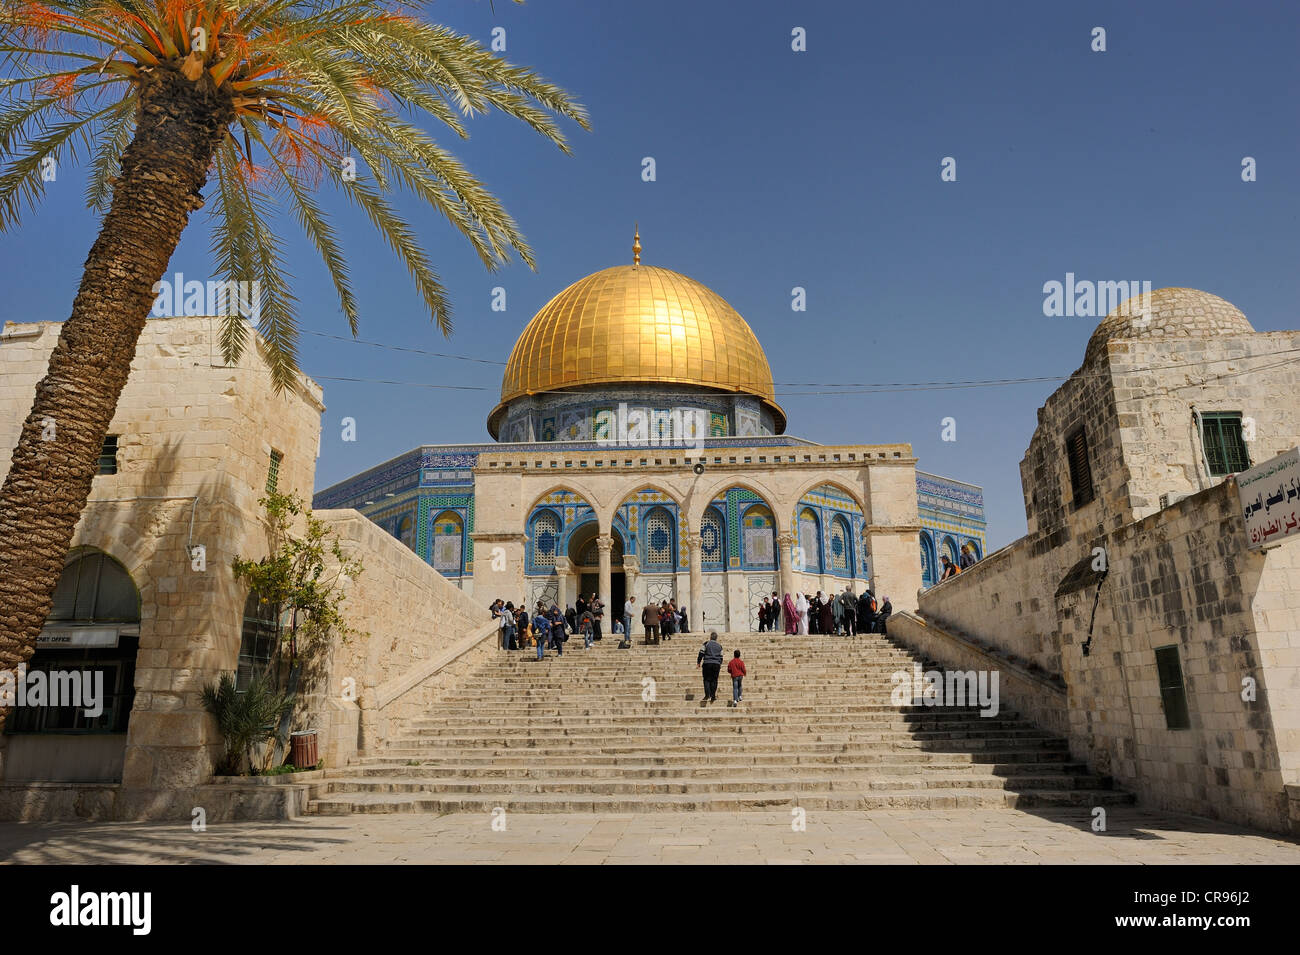 Stairs to the Dome of the Rock on the Temple Mount, Muslim Quarter, Old City, Jerusalem, Israel, Middle East - Stock Image